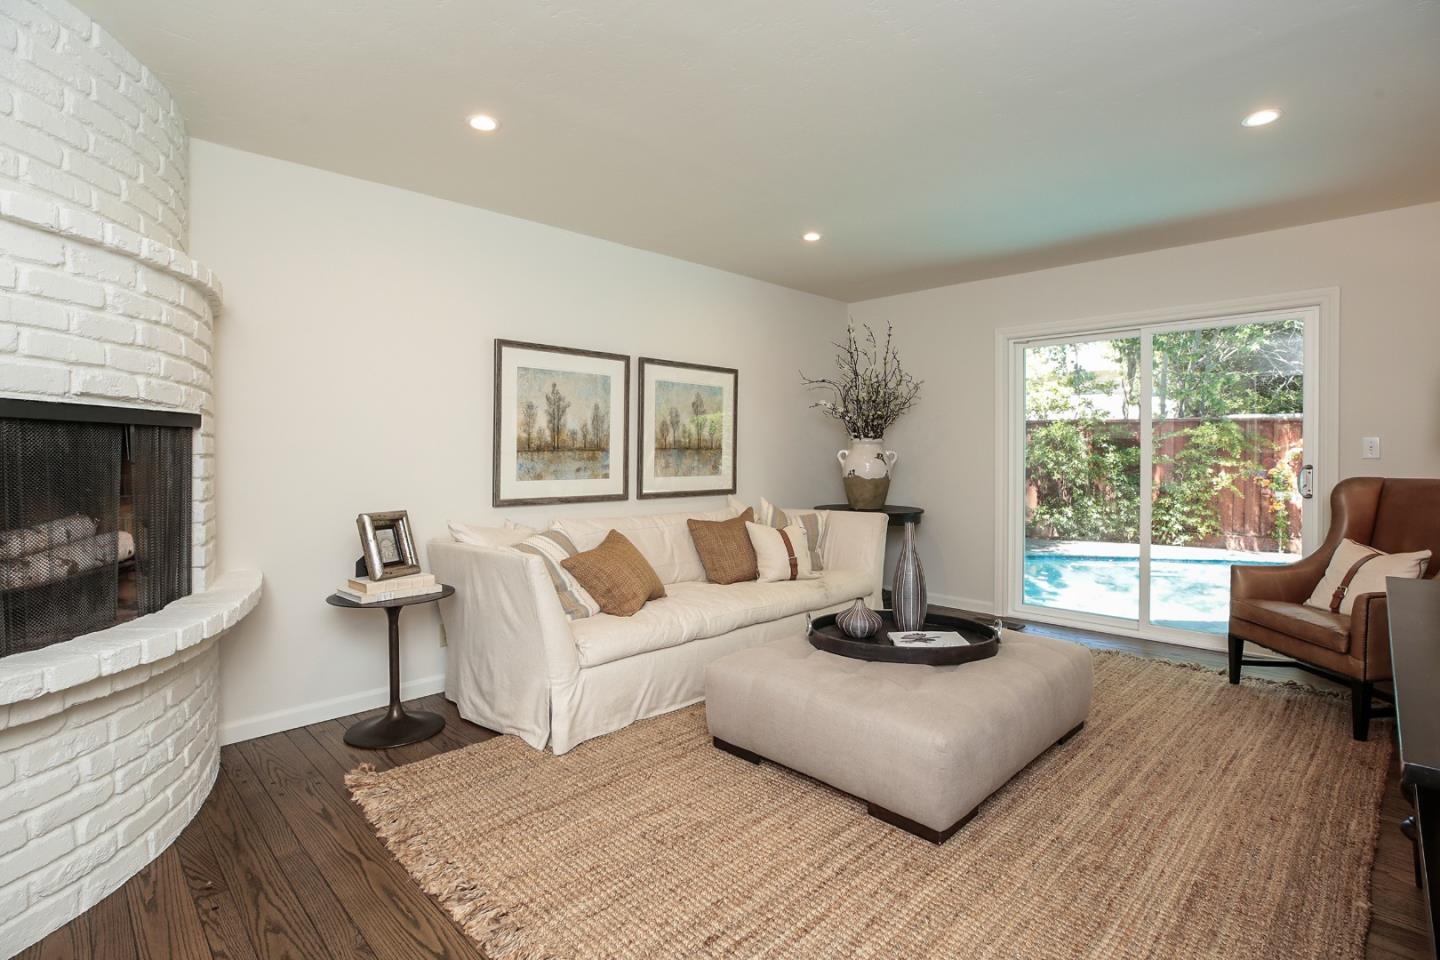 Additional photo for property listing at 4185 Cherry Oaks Place  Palo Alto, カリフォルニア 94306 アメリカ合衆国